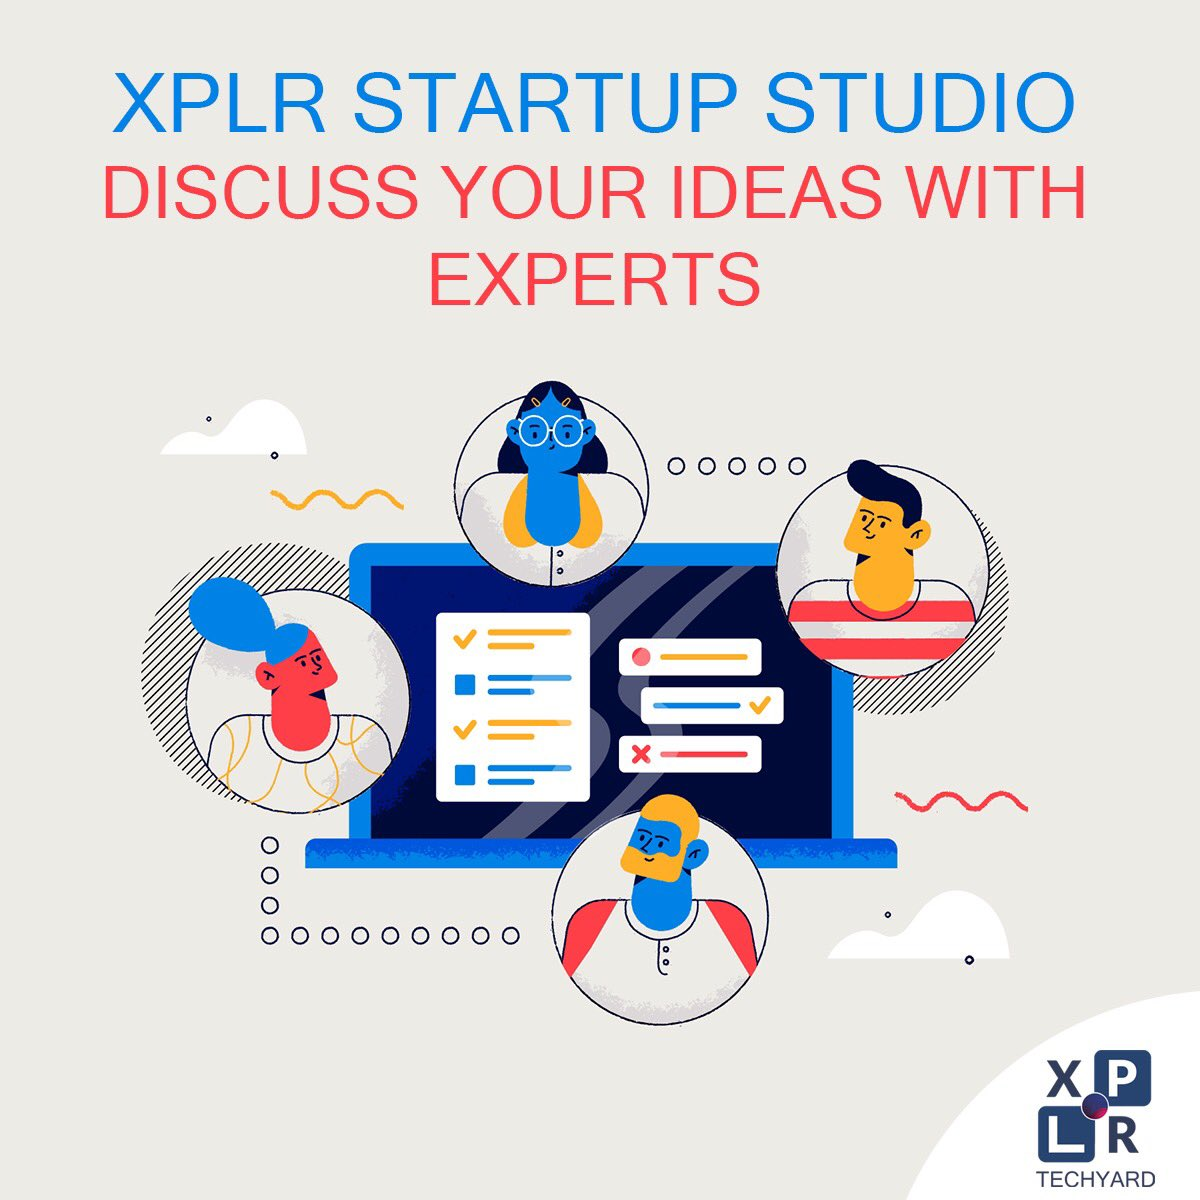 We Empower Startups  And Enable Them Reach New Heights    We believe in a collaborative approach so as to groom the entrepreneurs throughout their startup journey and further enhance their business models.  #startup #startupsolutions #digitalsolutions pic.twitter.com/2D09jIxHWJ